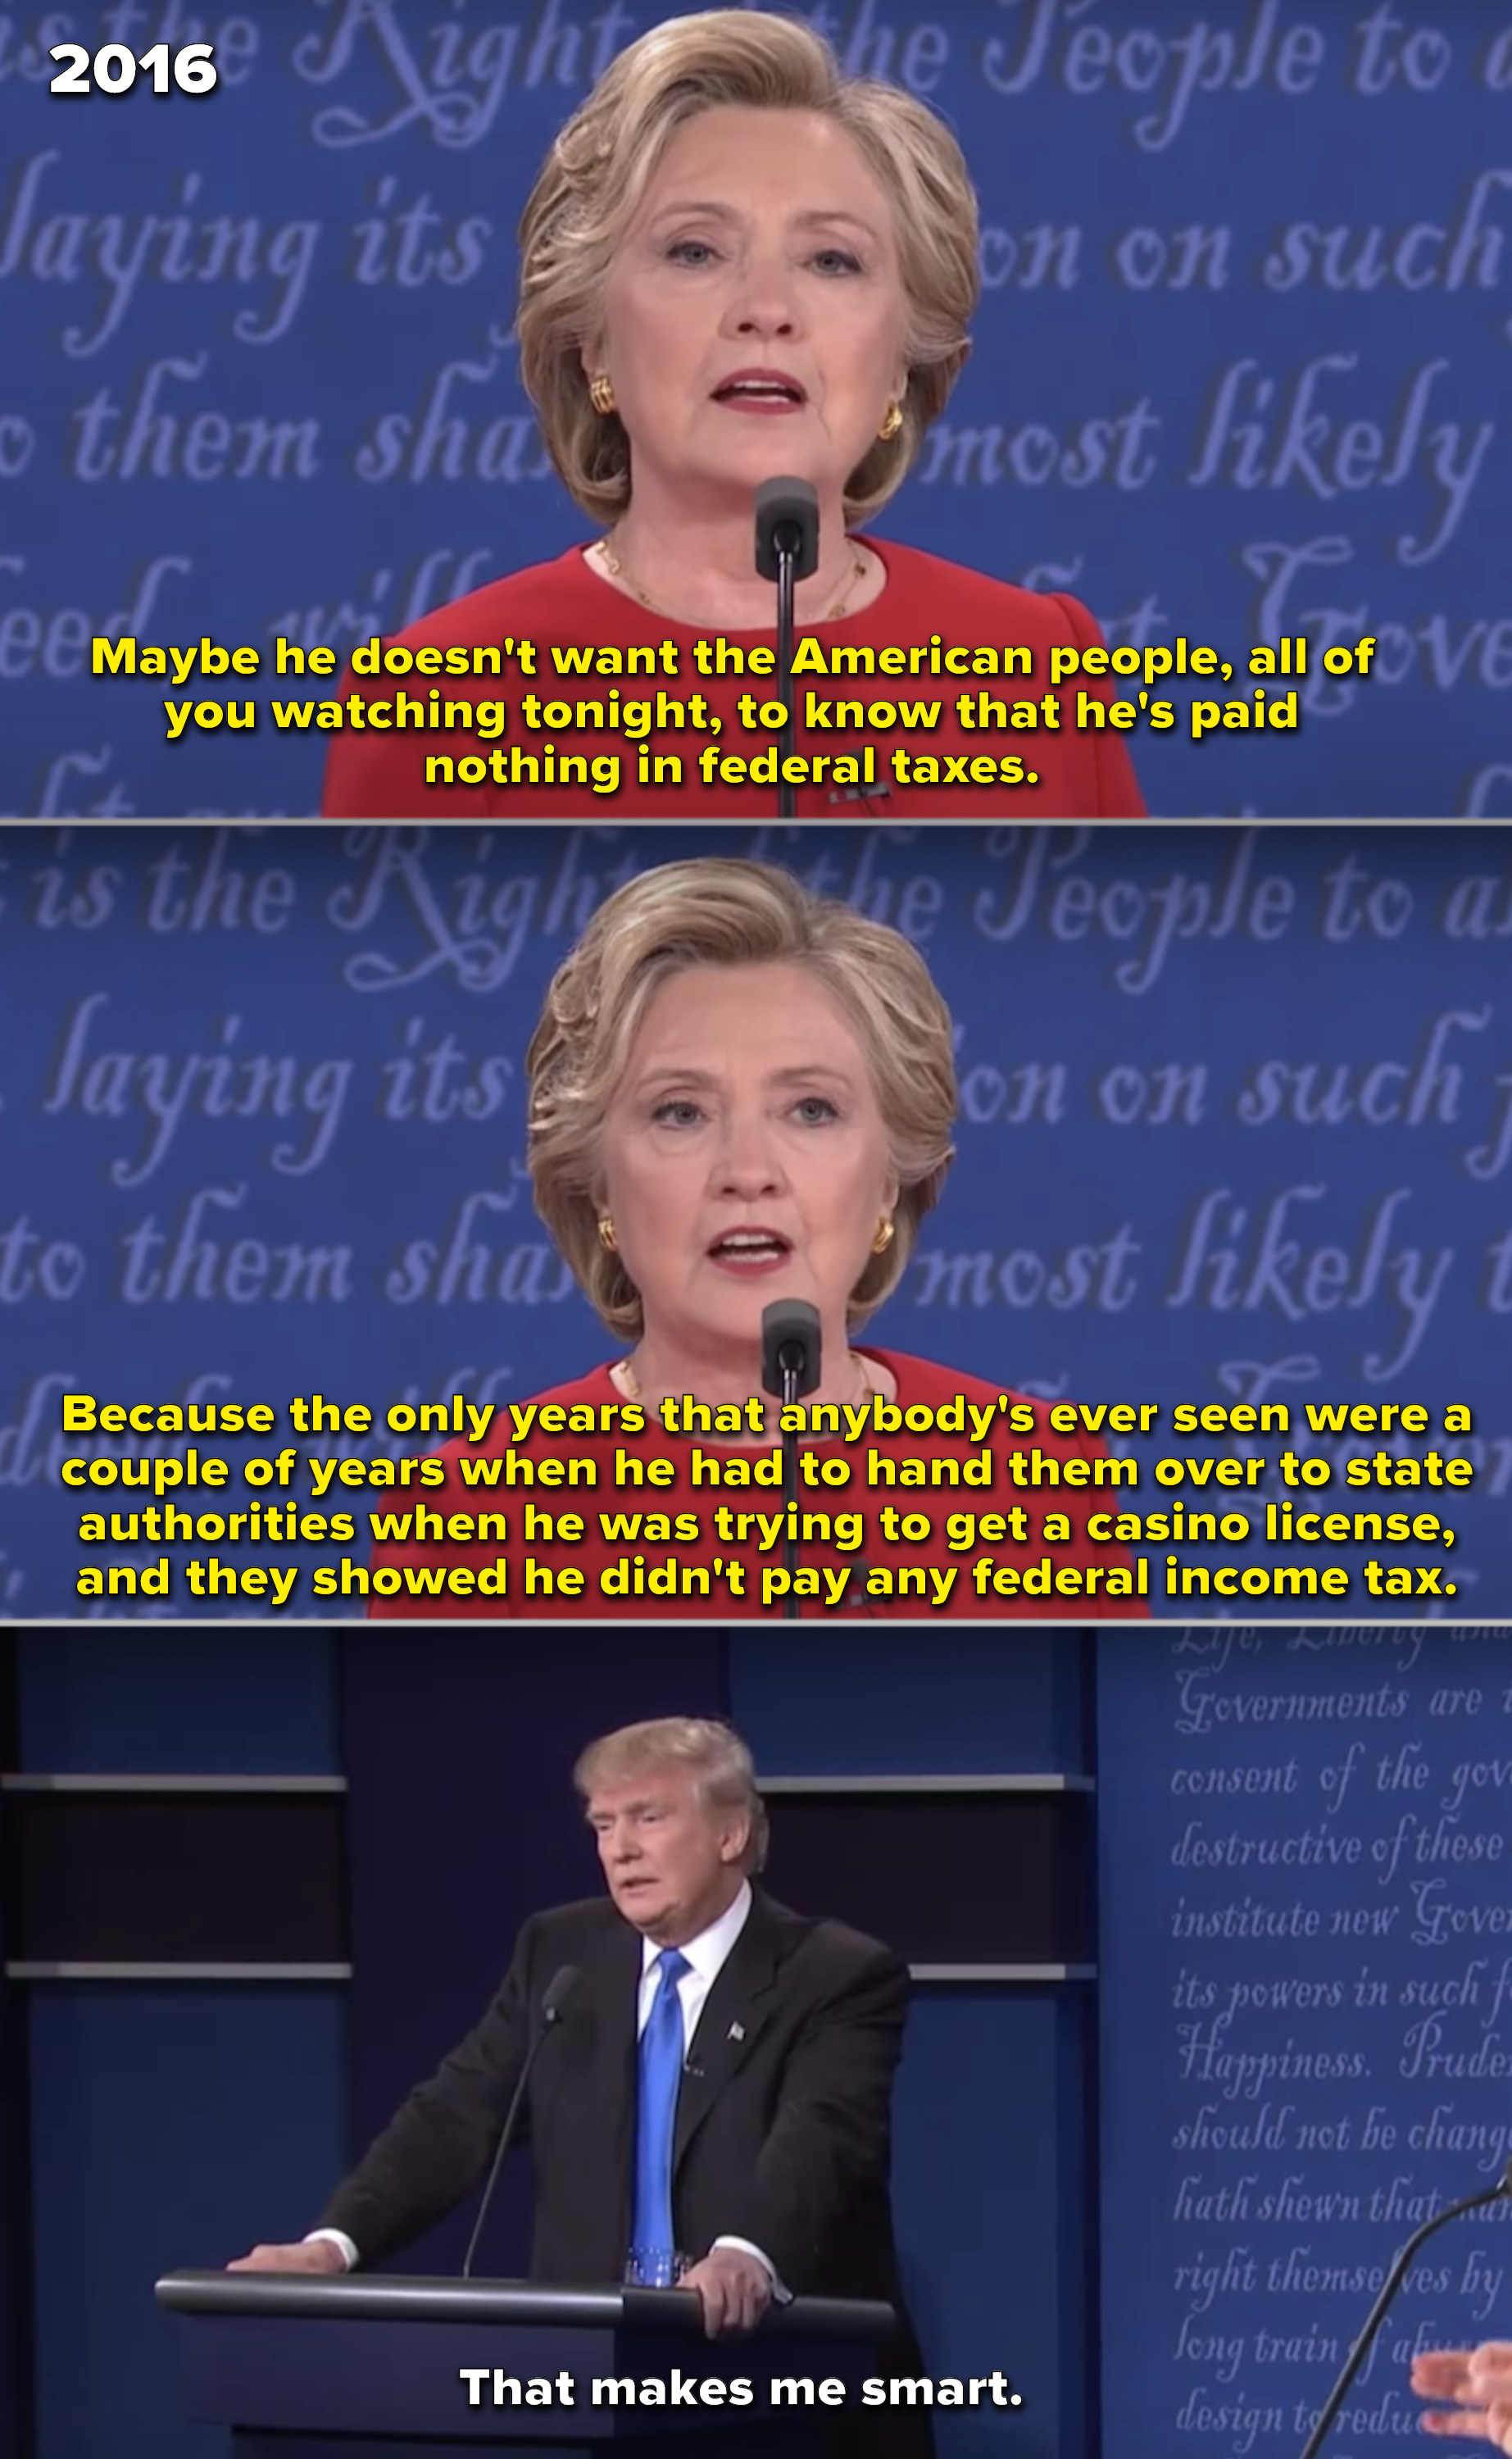 """Trump claiming he's """"smart"""" for not paying any income taxes during his debate with Hillary Clinton in 2016"""